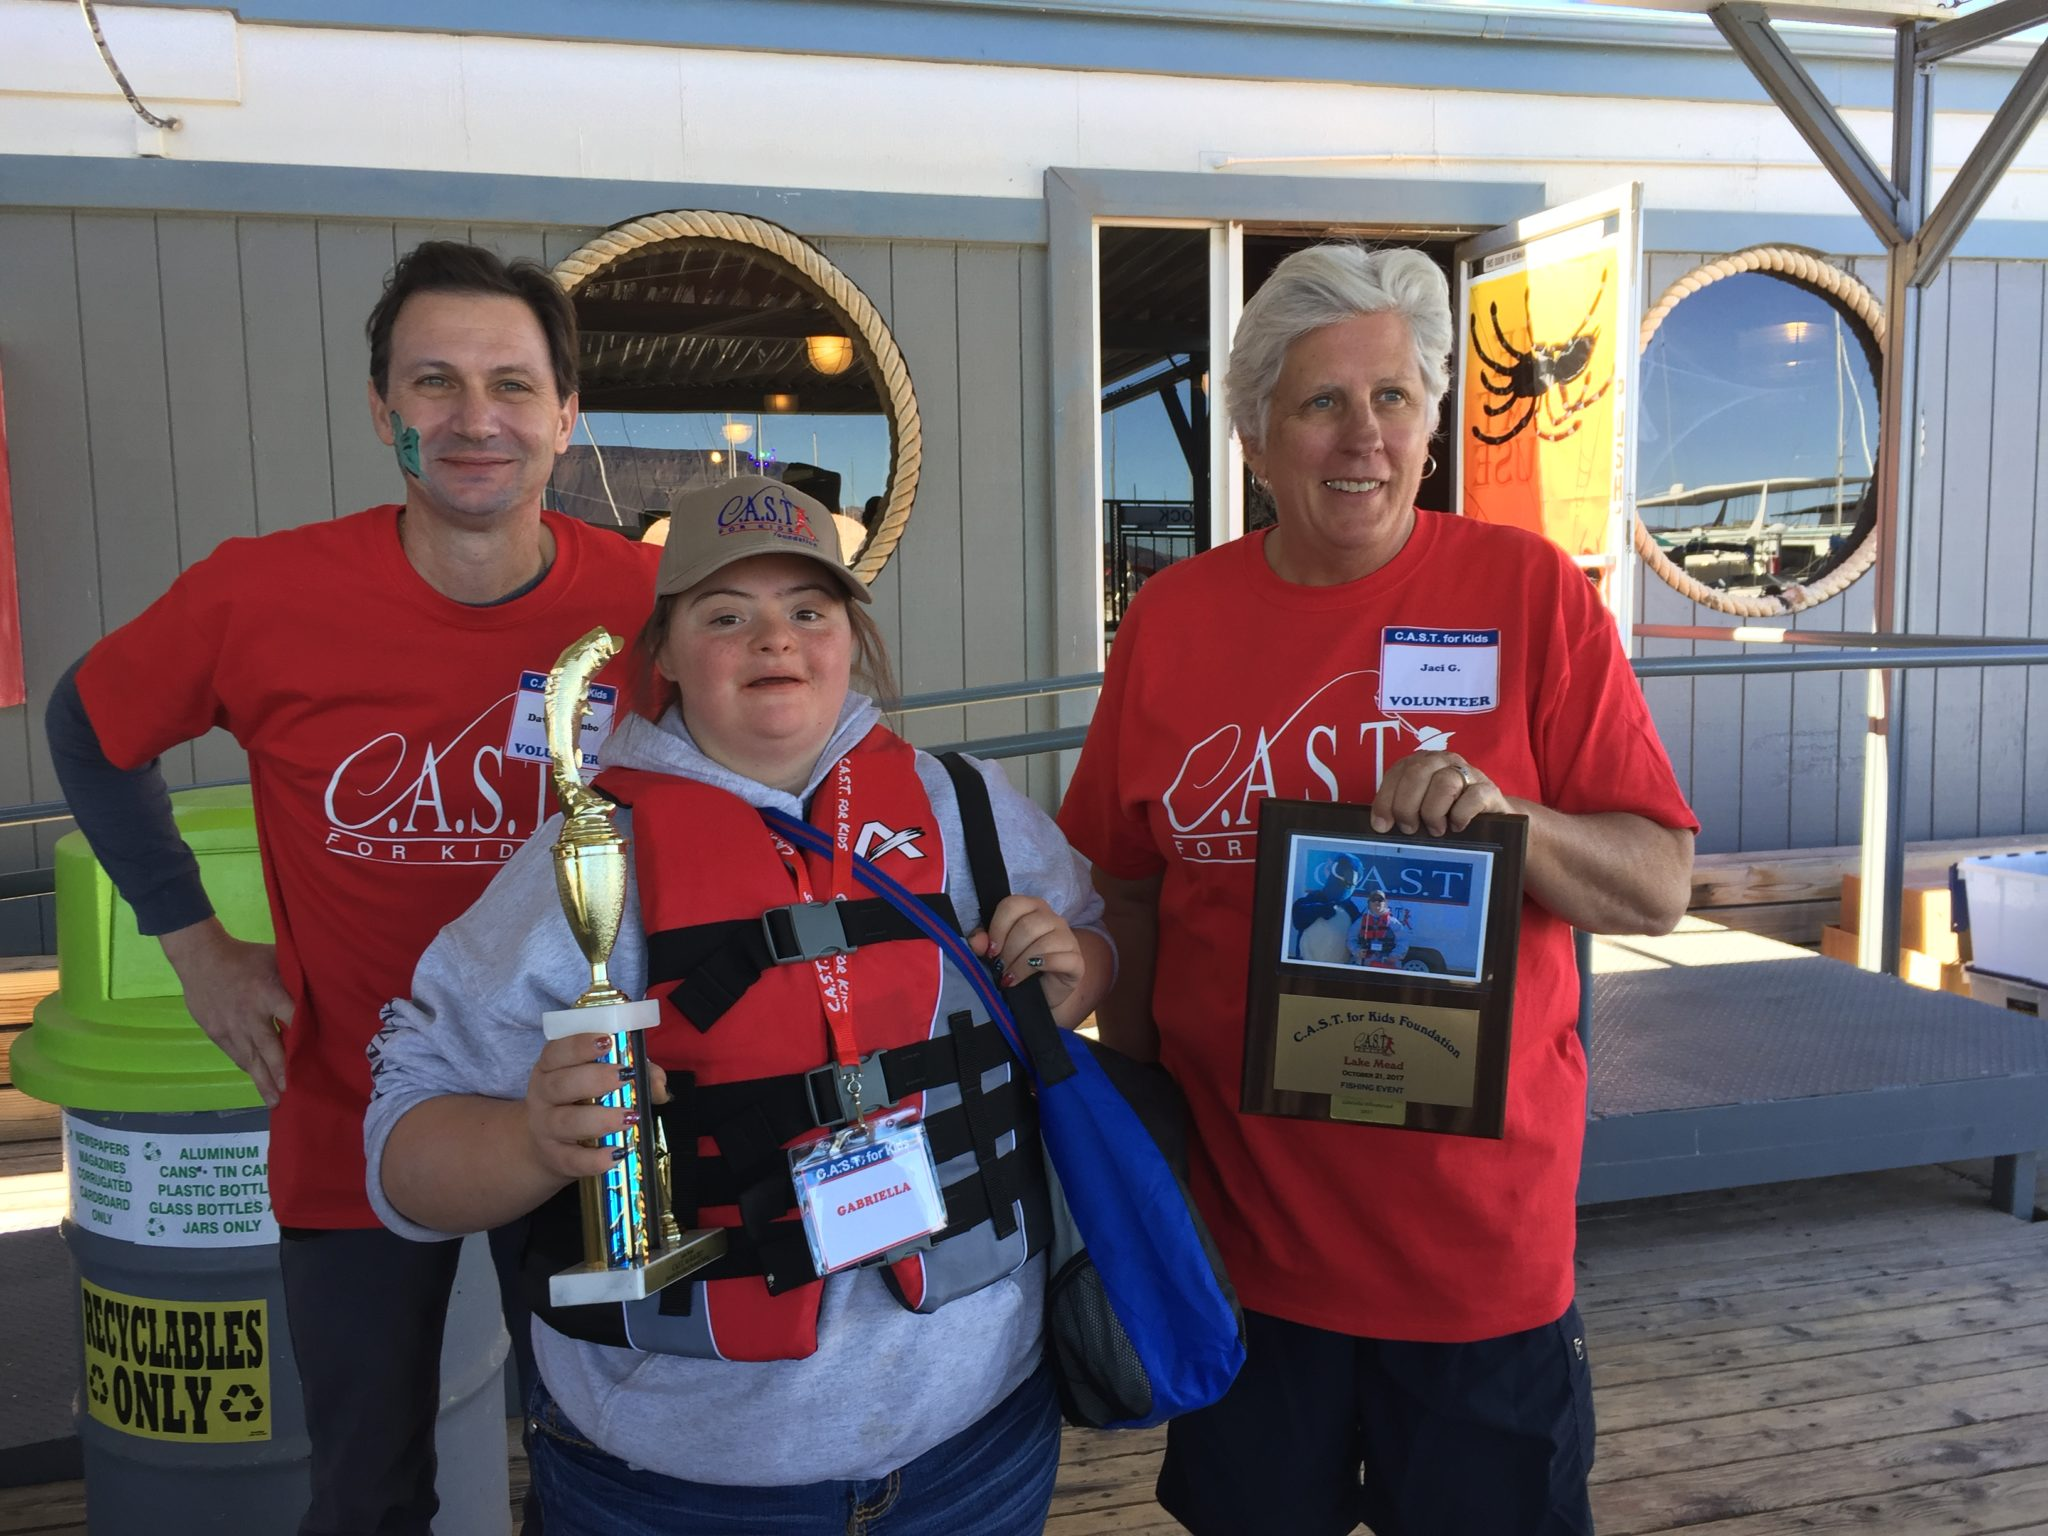 C.A.S.T. for Kids – Lake Mead (NV)